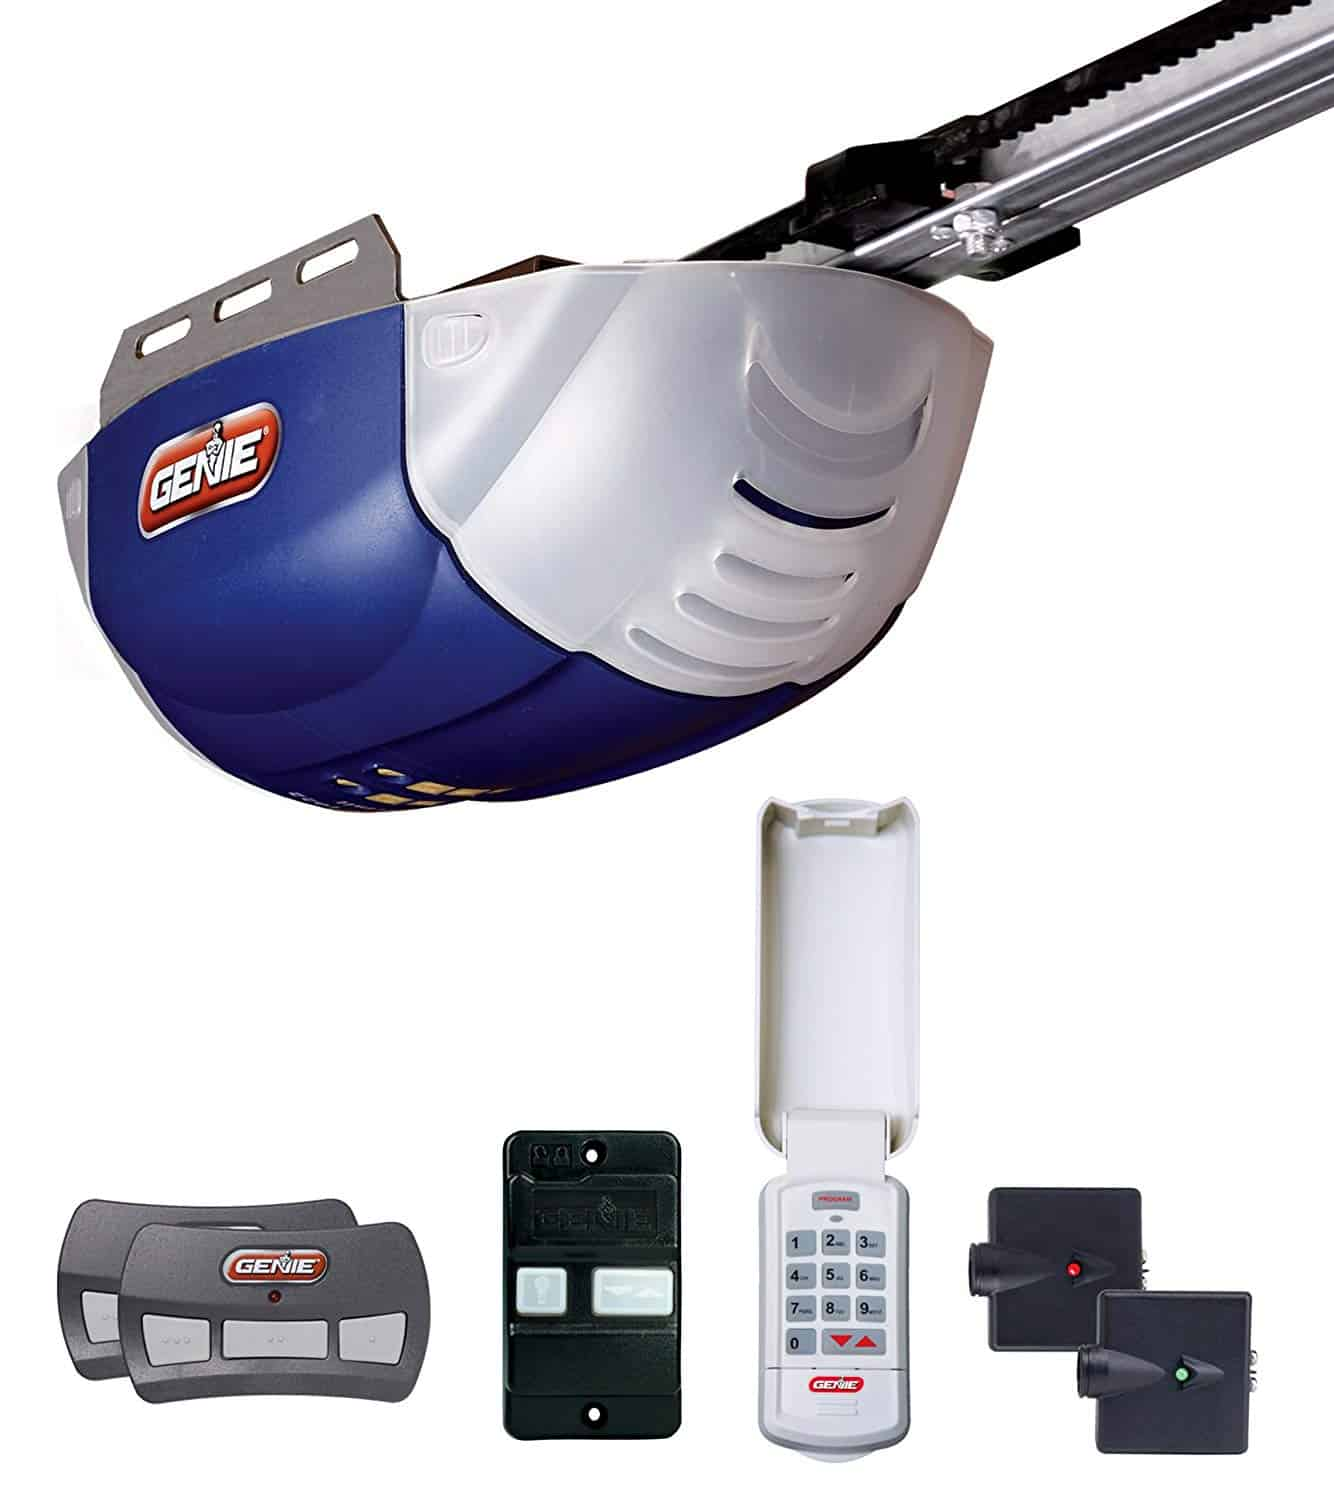 Genie 2042-TKC QuietLift 800 Garage Door Opener Review